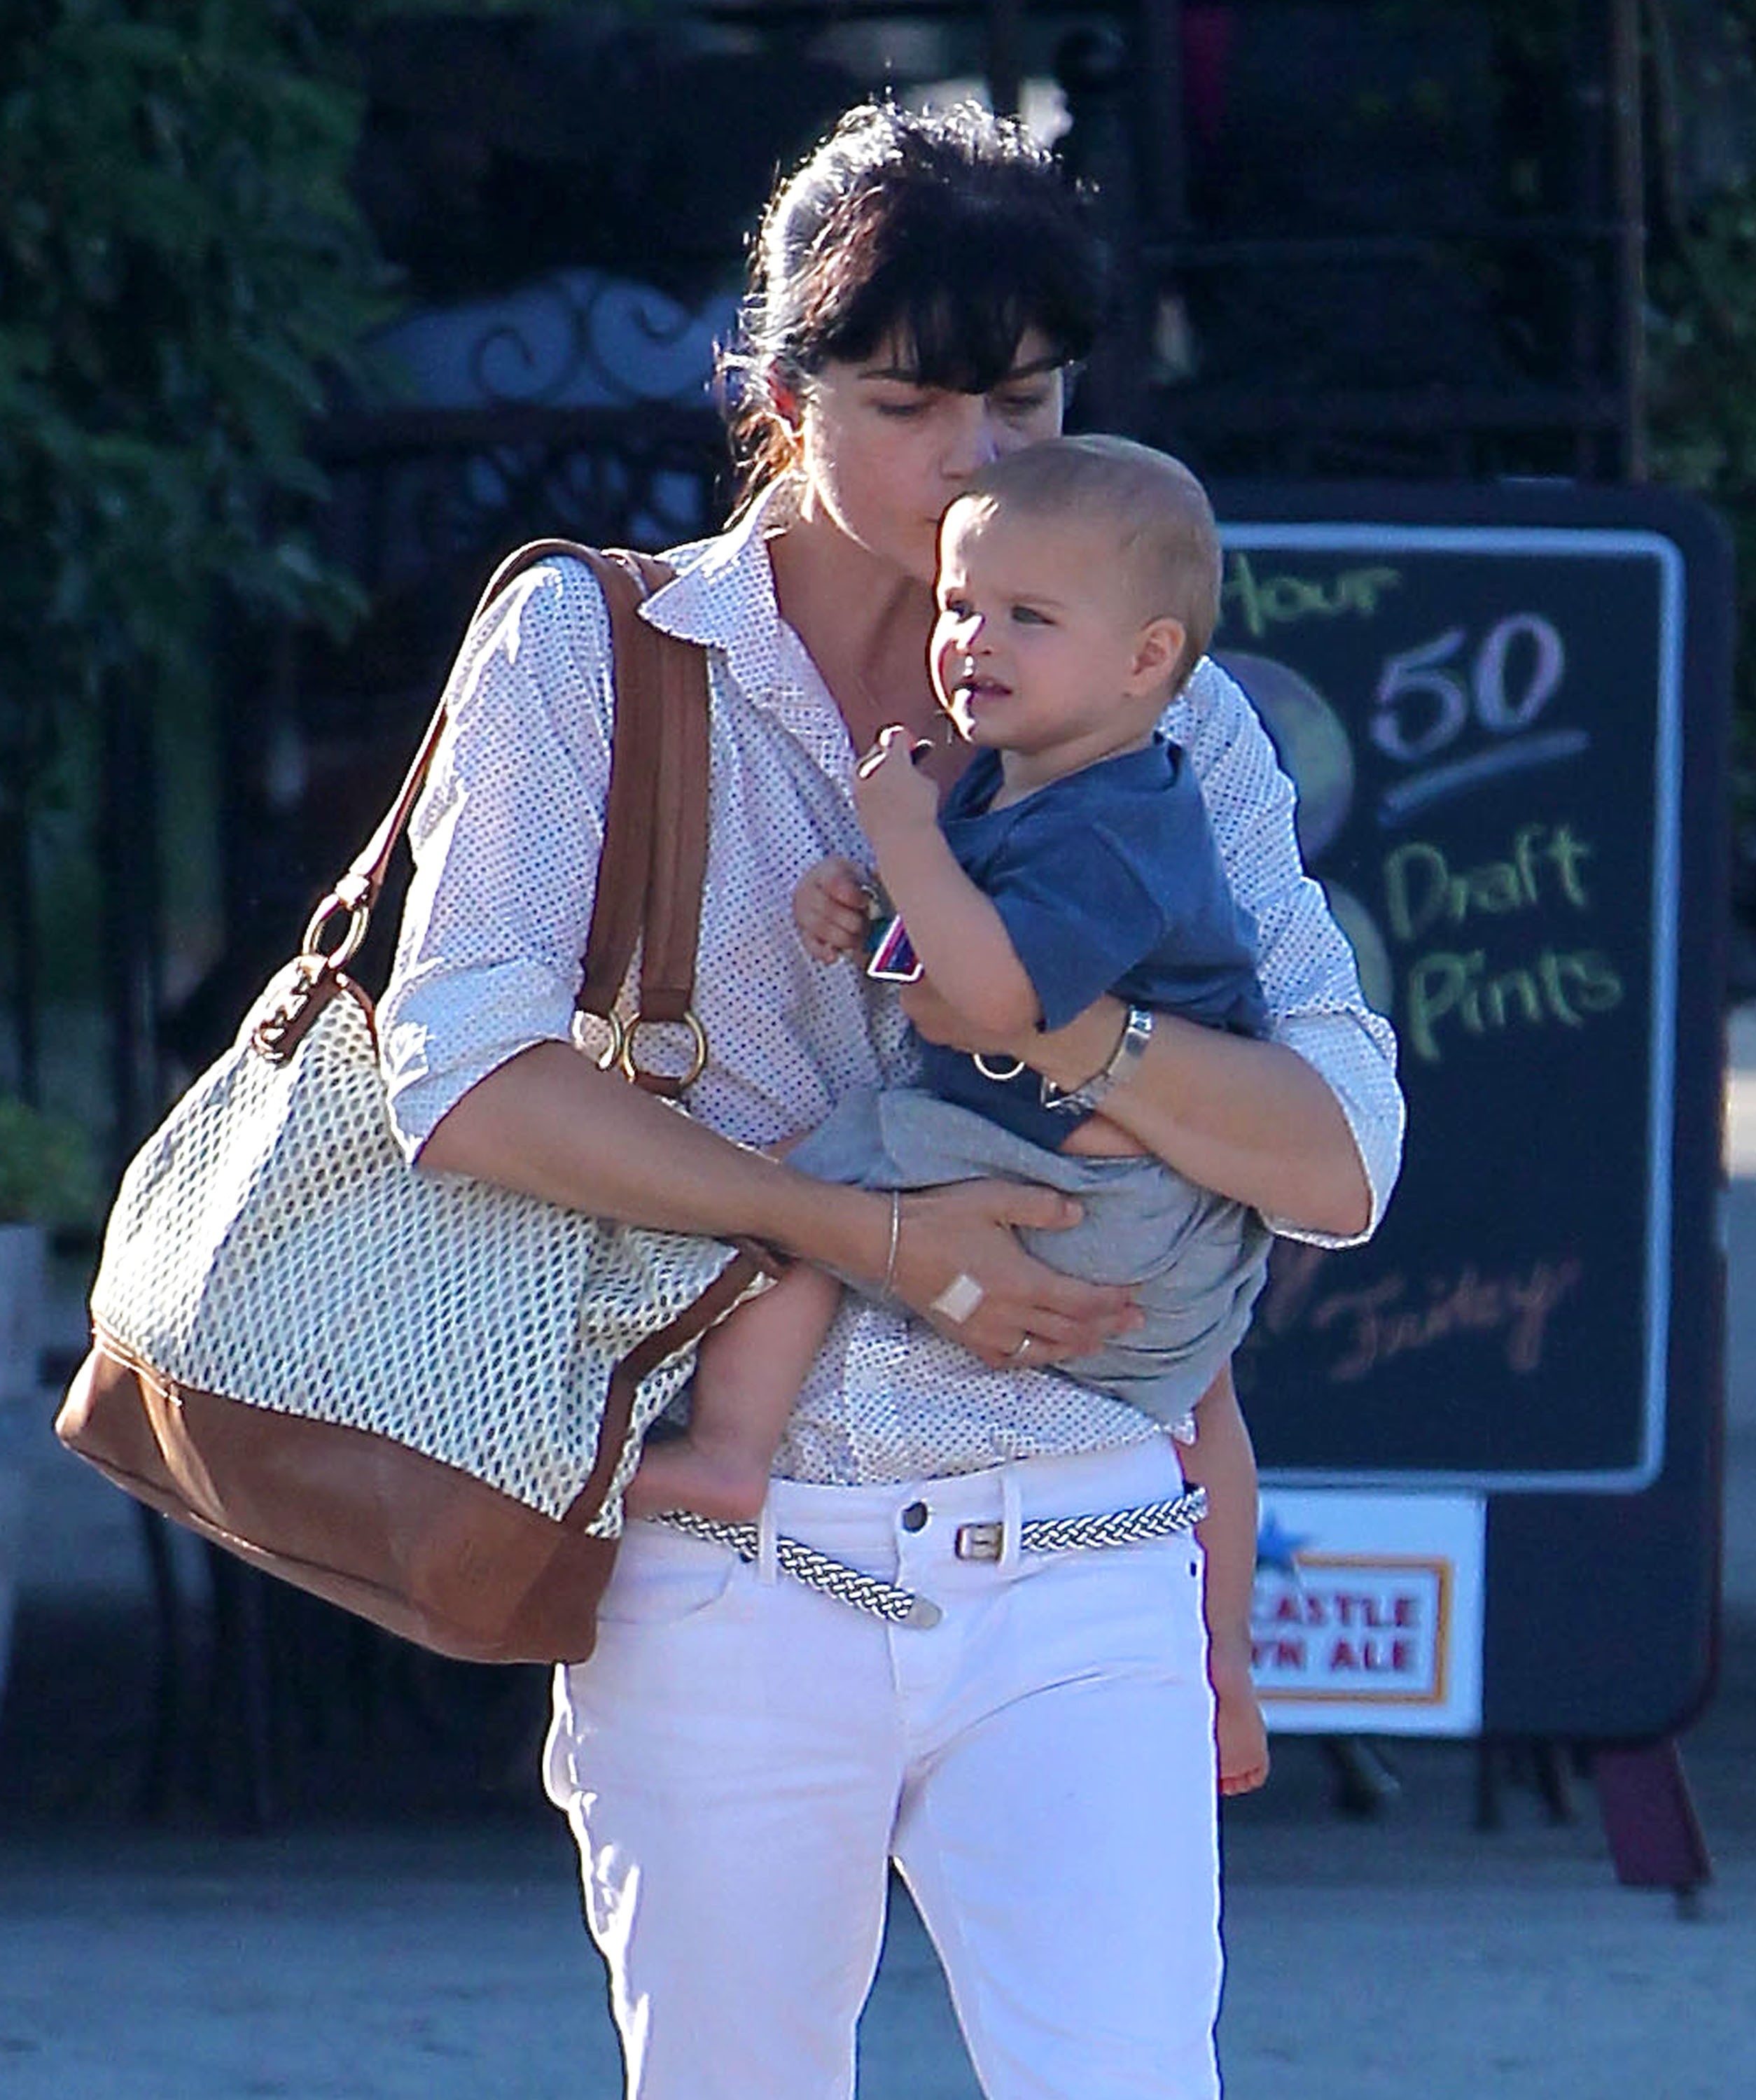 Selma blair son